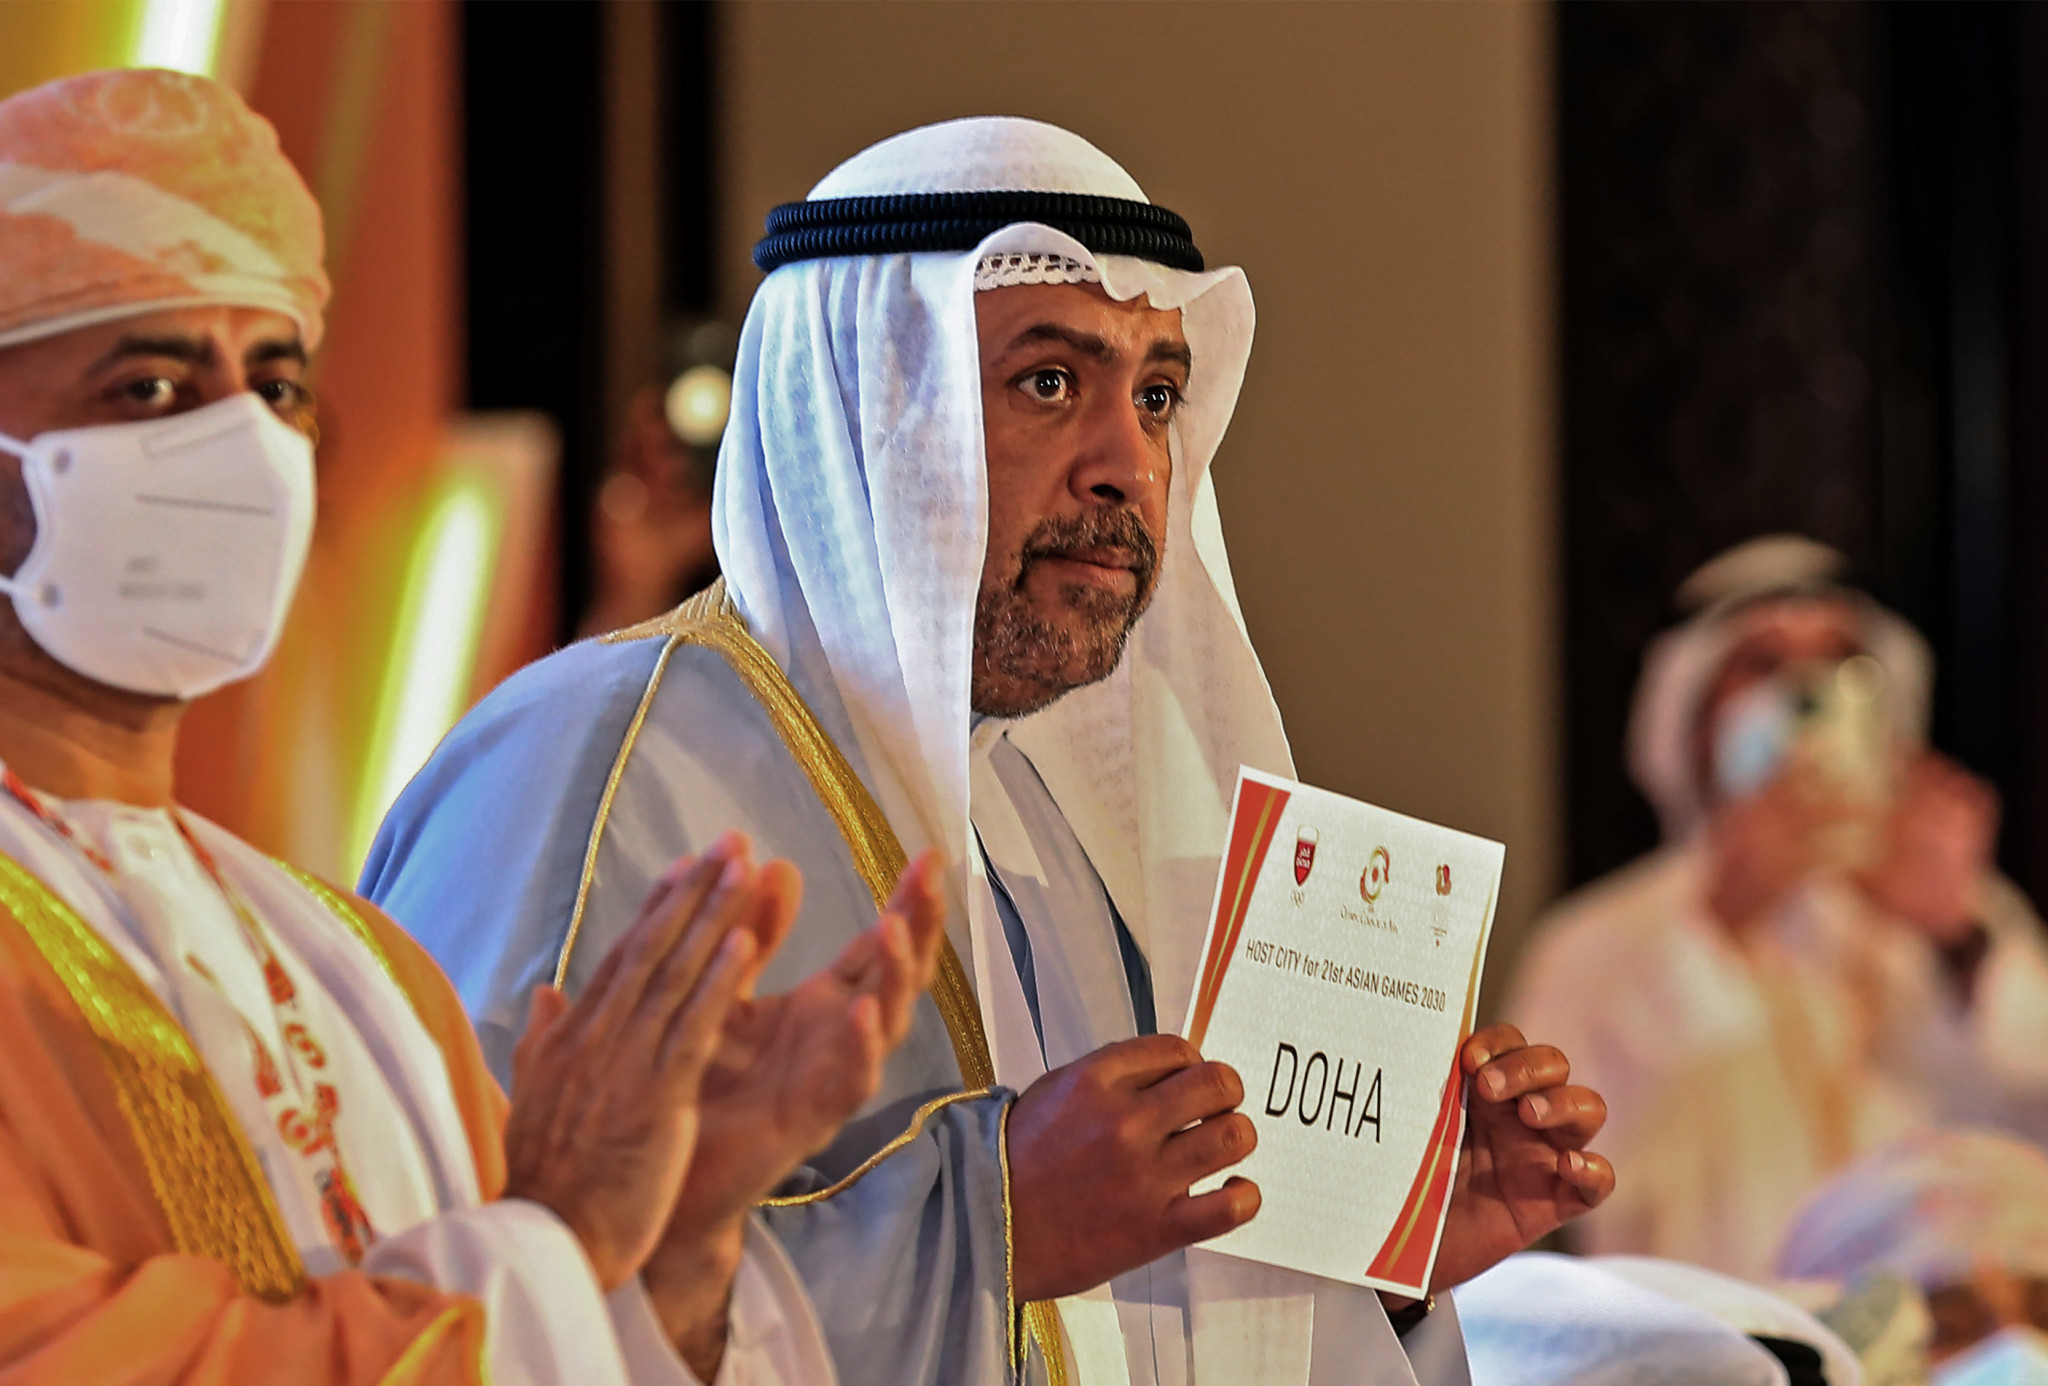 Doha to host 2030 Asian Games with Riyadh awarded 2034 edition